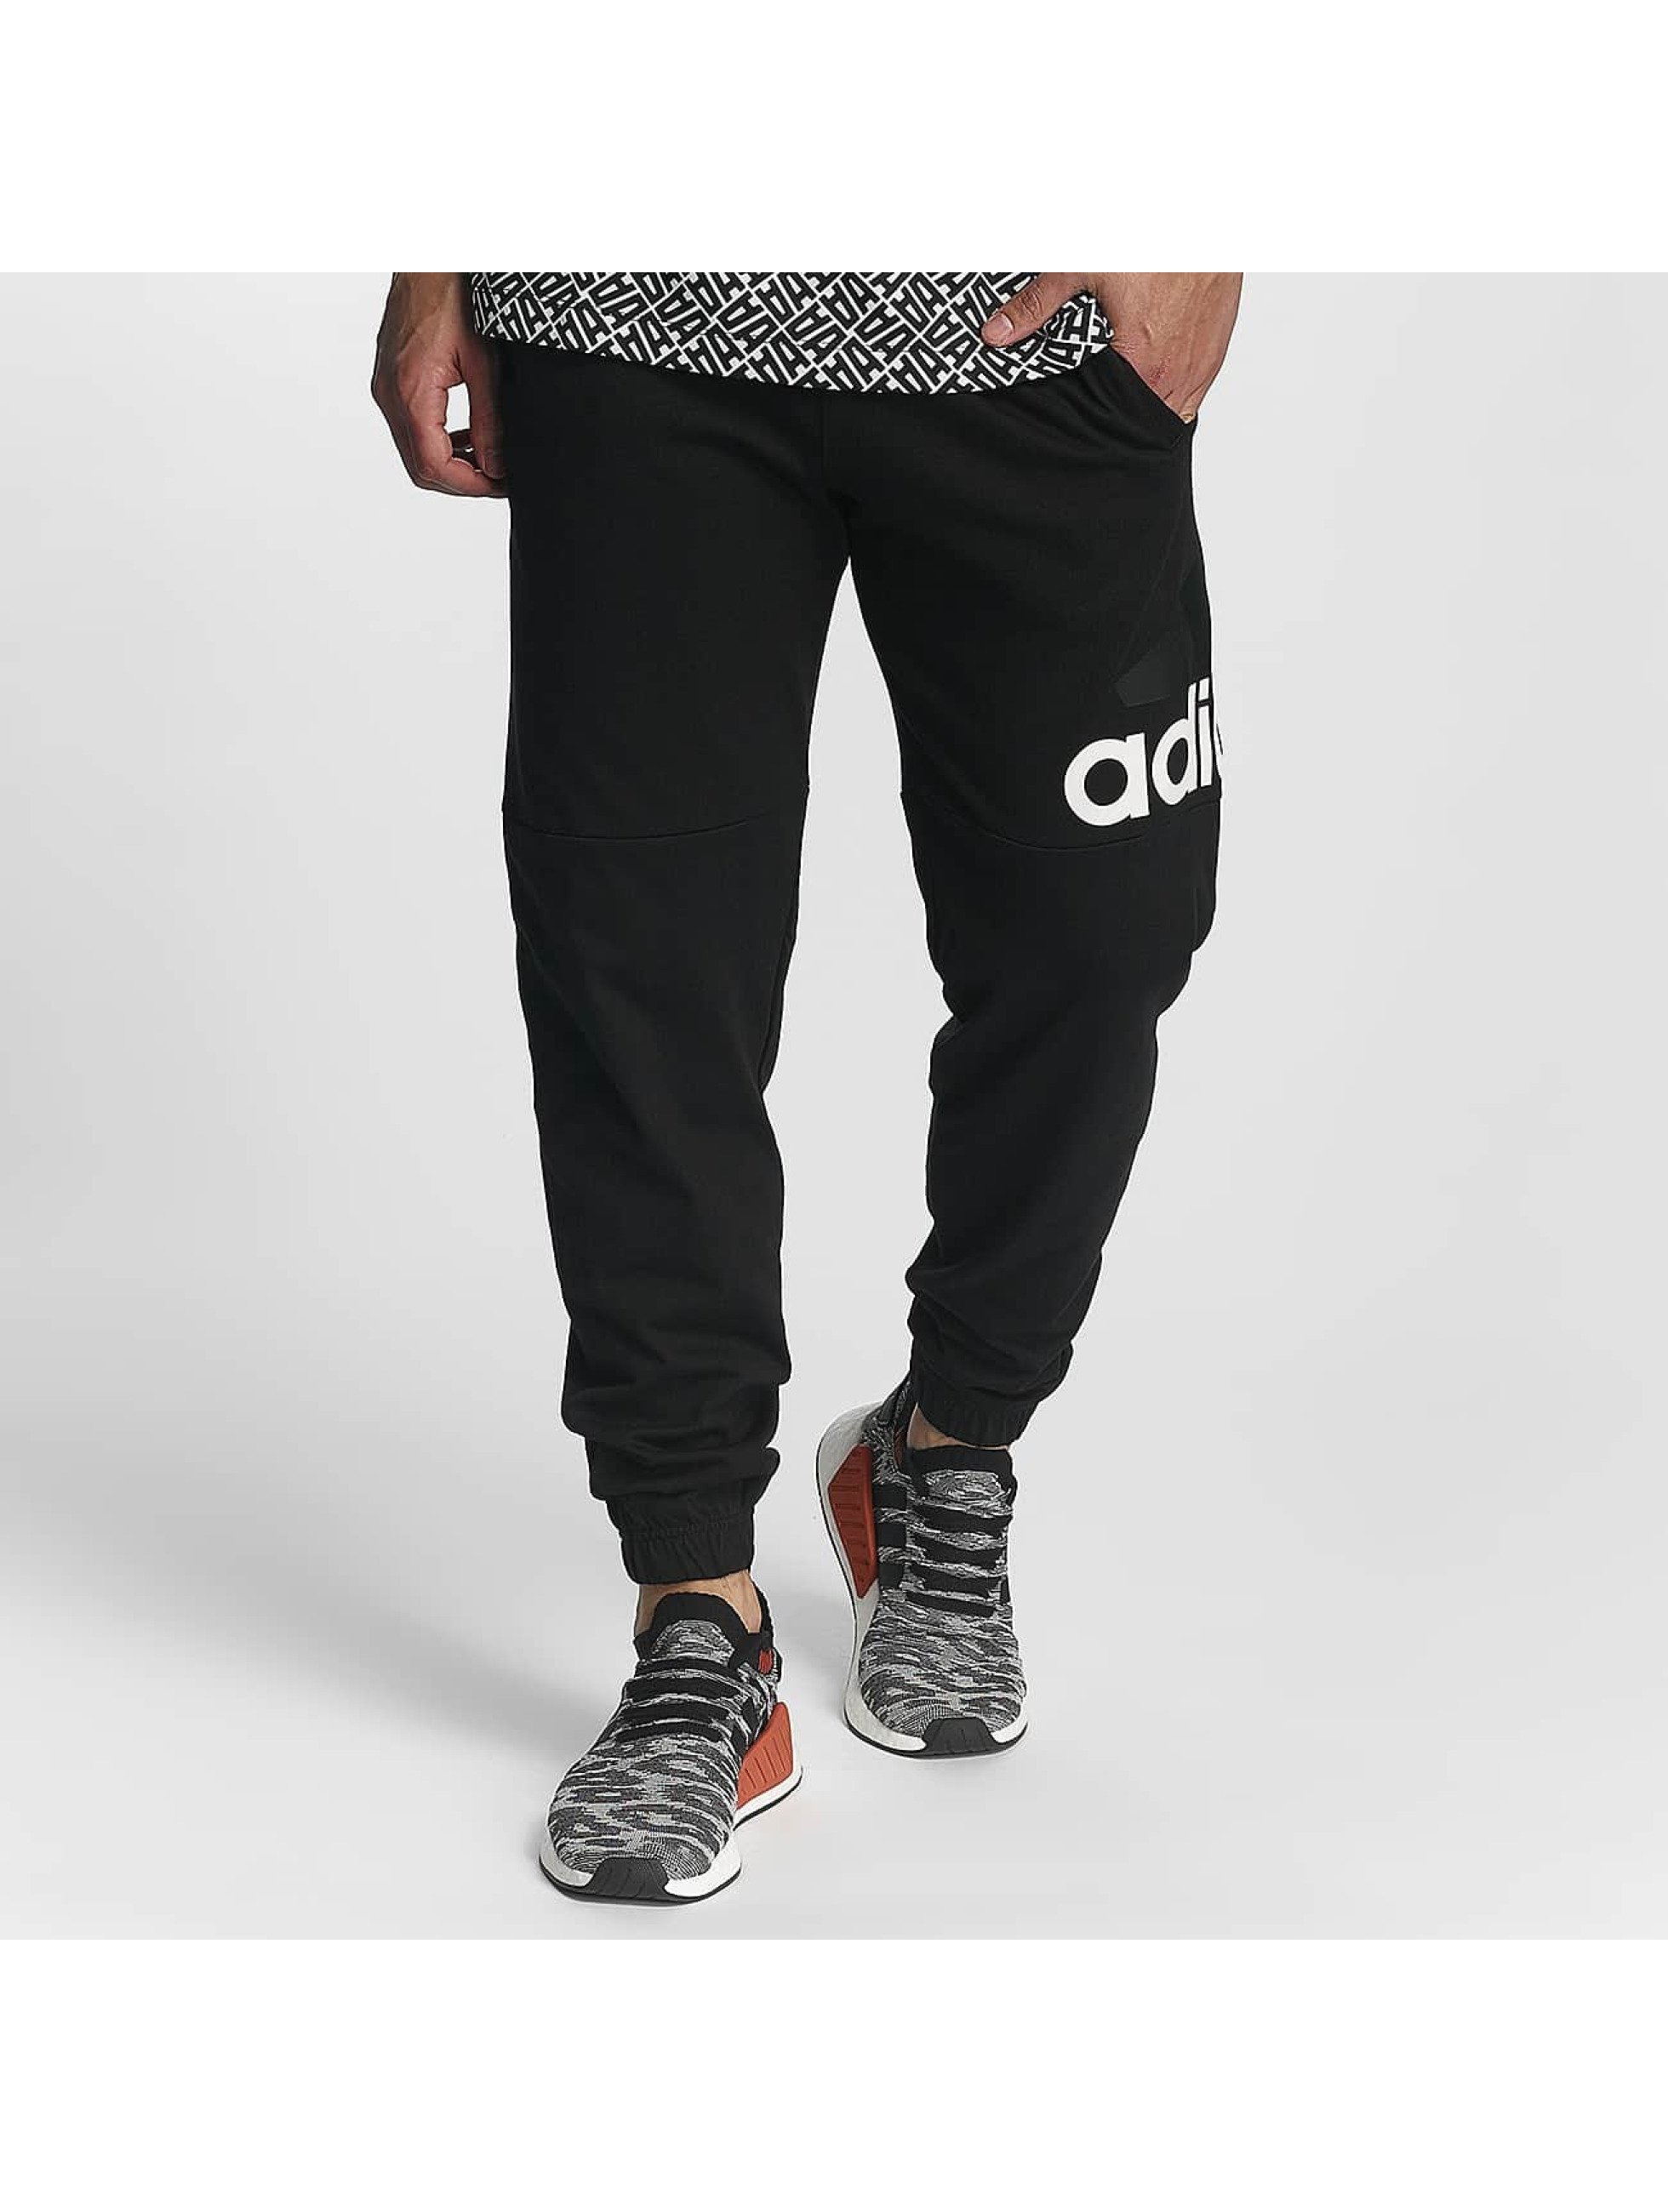 adidas Performance Männer Jogginghose Essentials Logo in schwarz